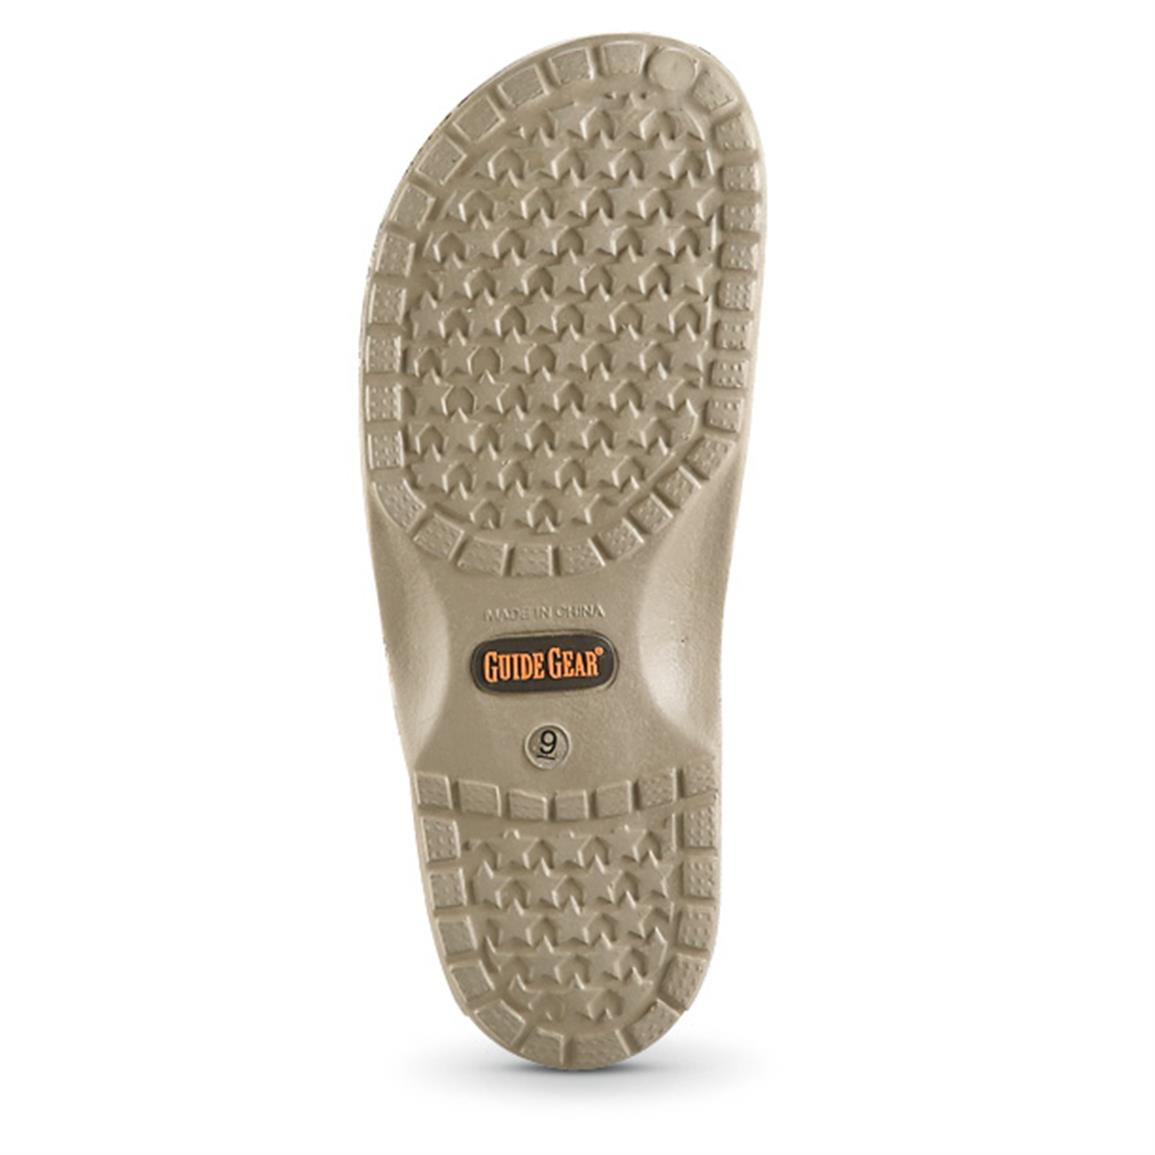 Sure-grip traction sports comfort